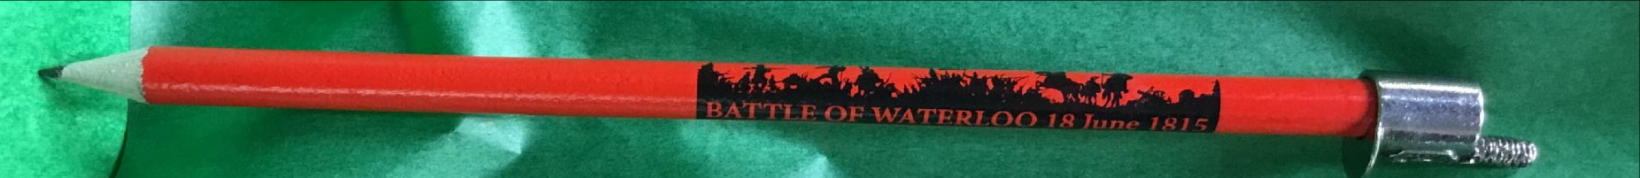 Battle of Waterloo Hat Pencil